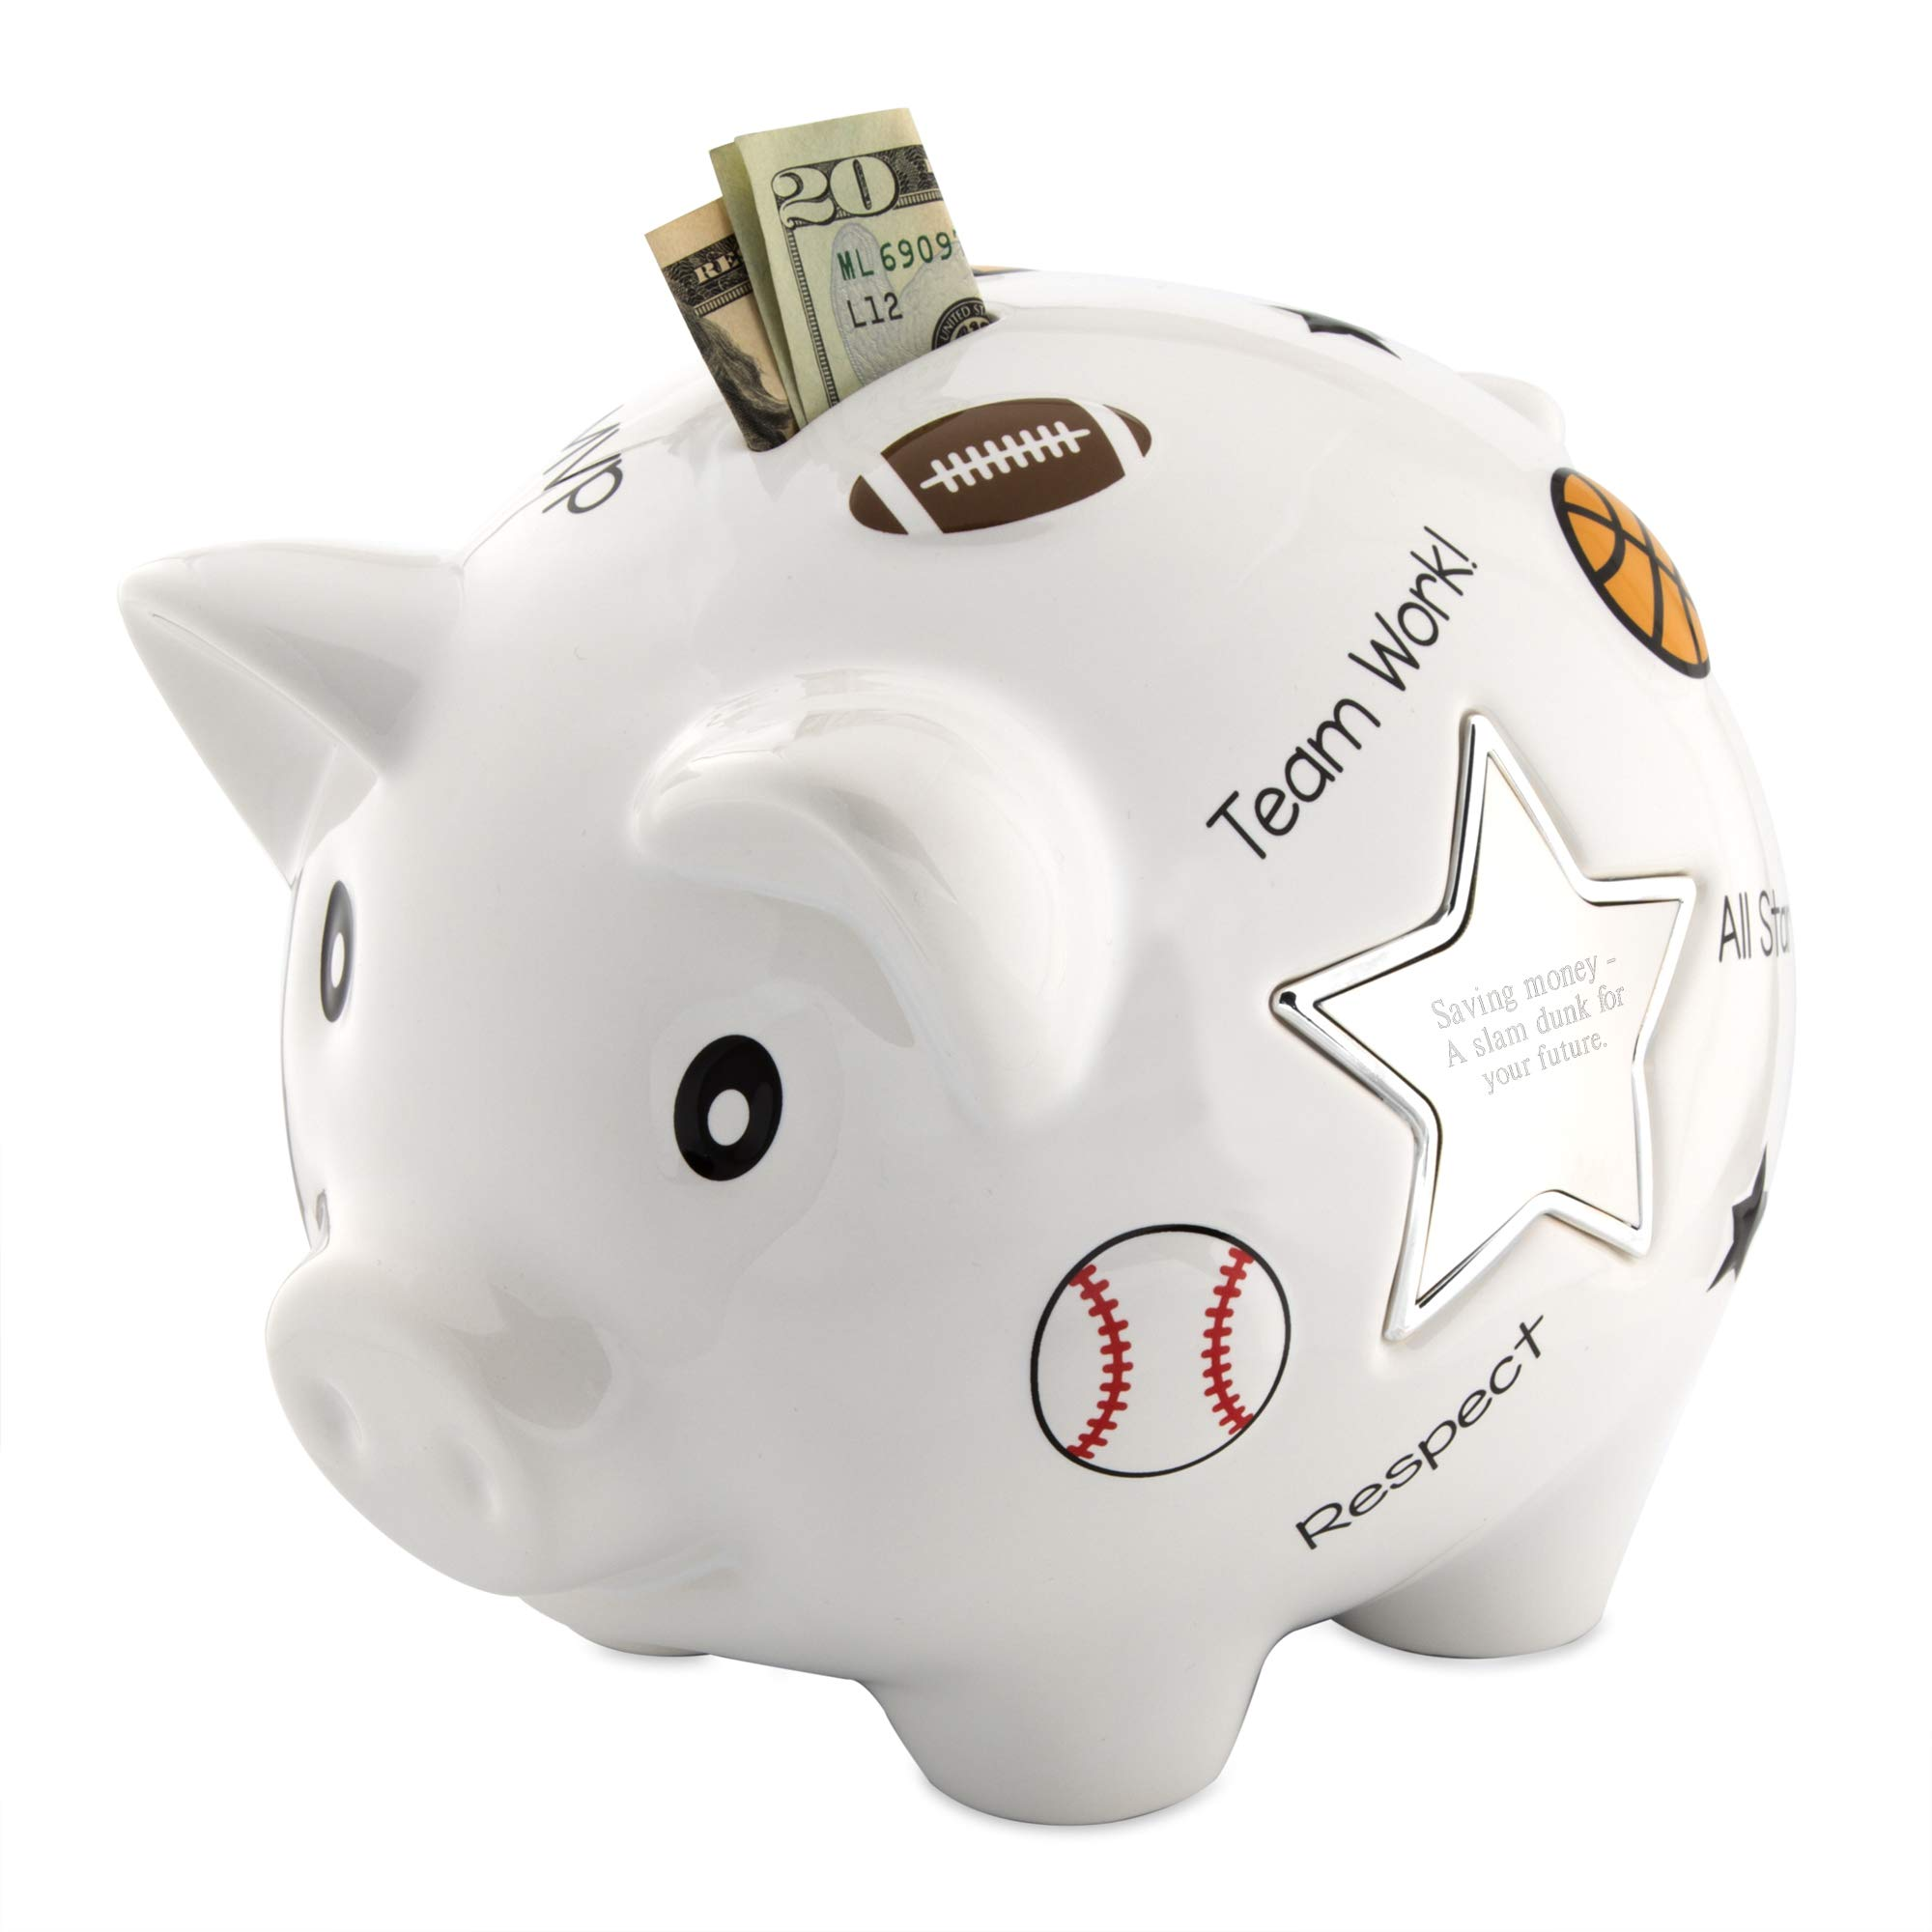 Things Remembered Personalized Sports Piggy Bank with Engraving Included